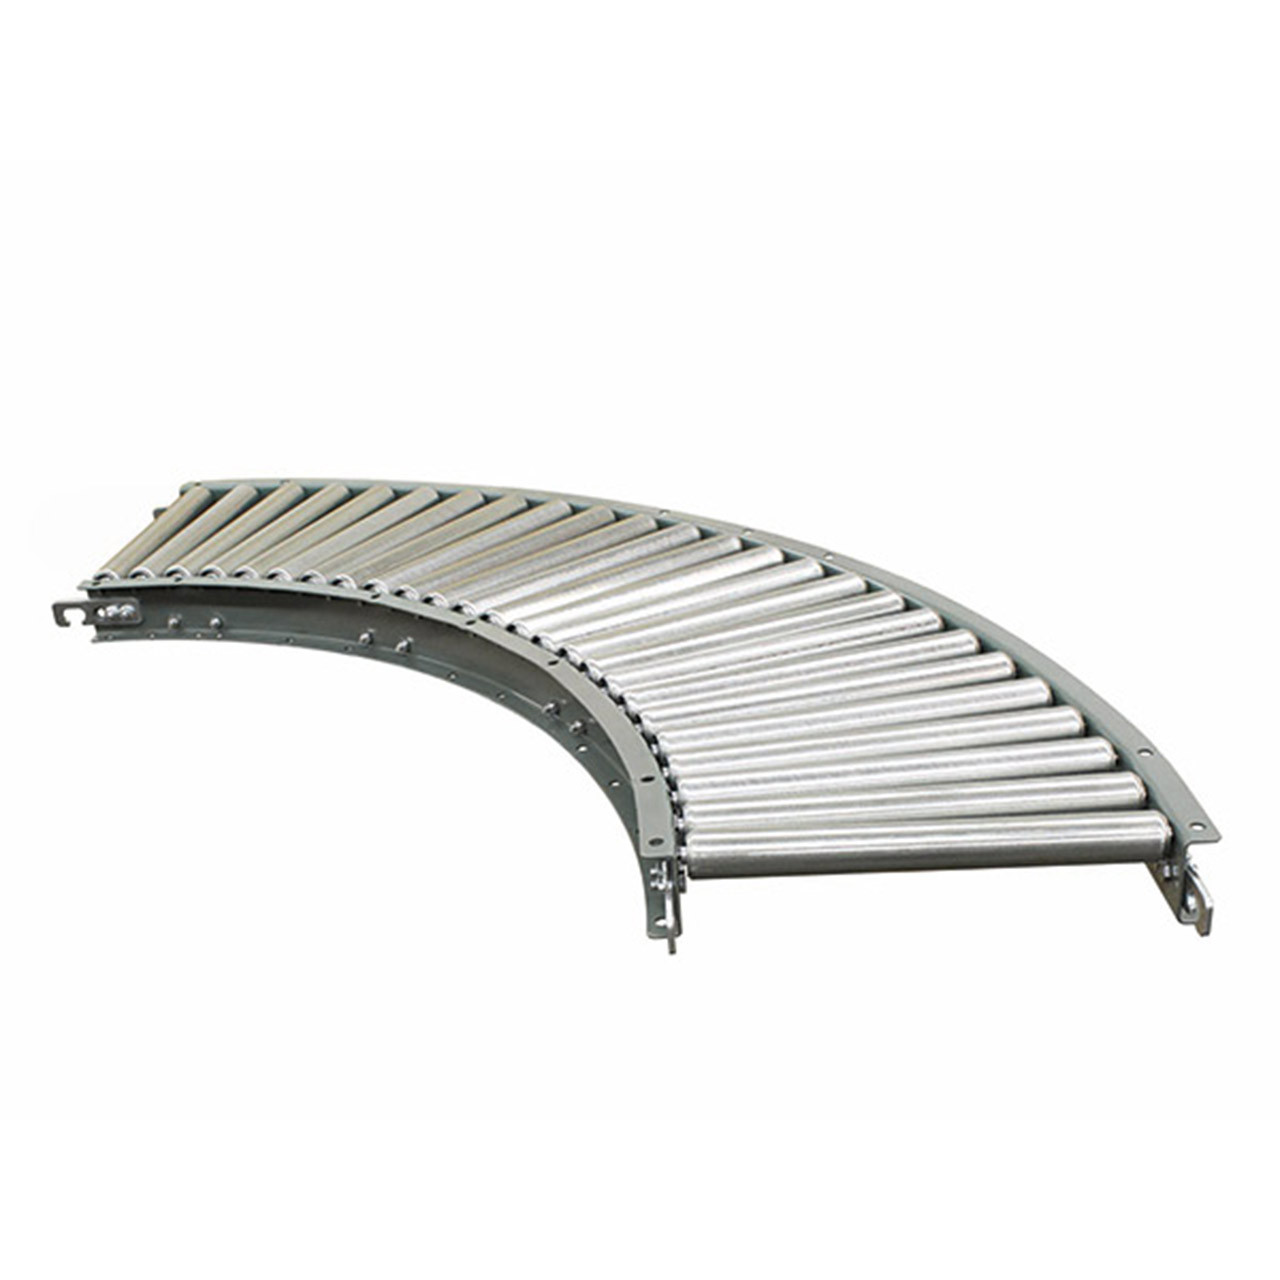 Gravity Roller Conveyor Curve